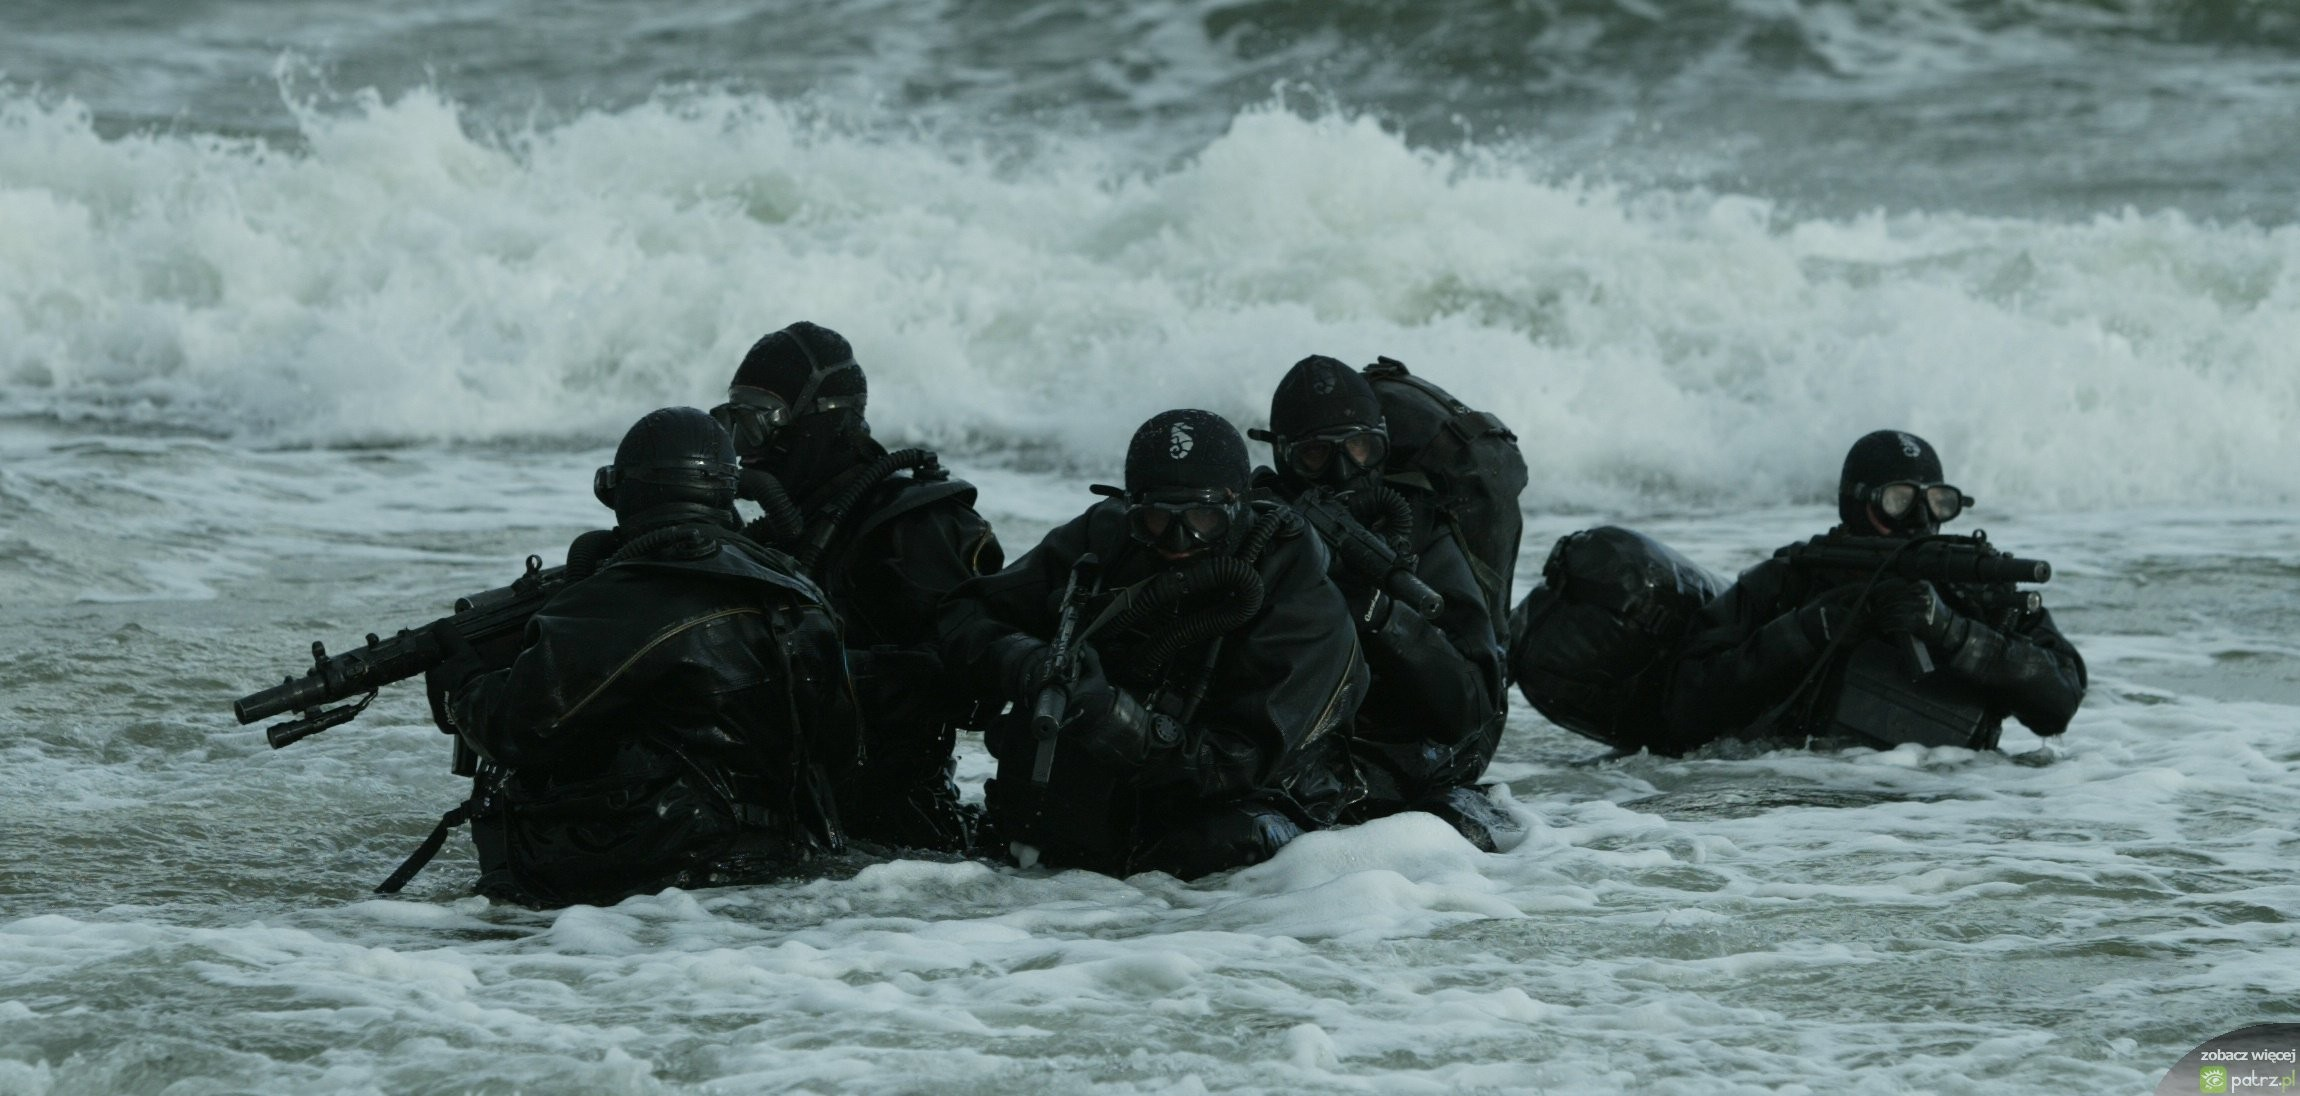 Army poland special forces wallpaper     282781   WallpaperUP